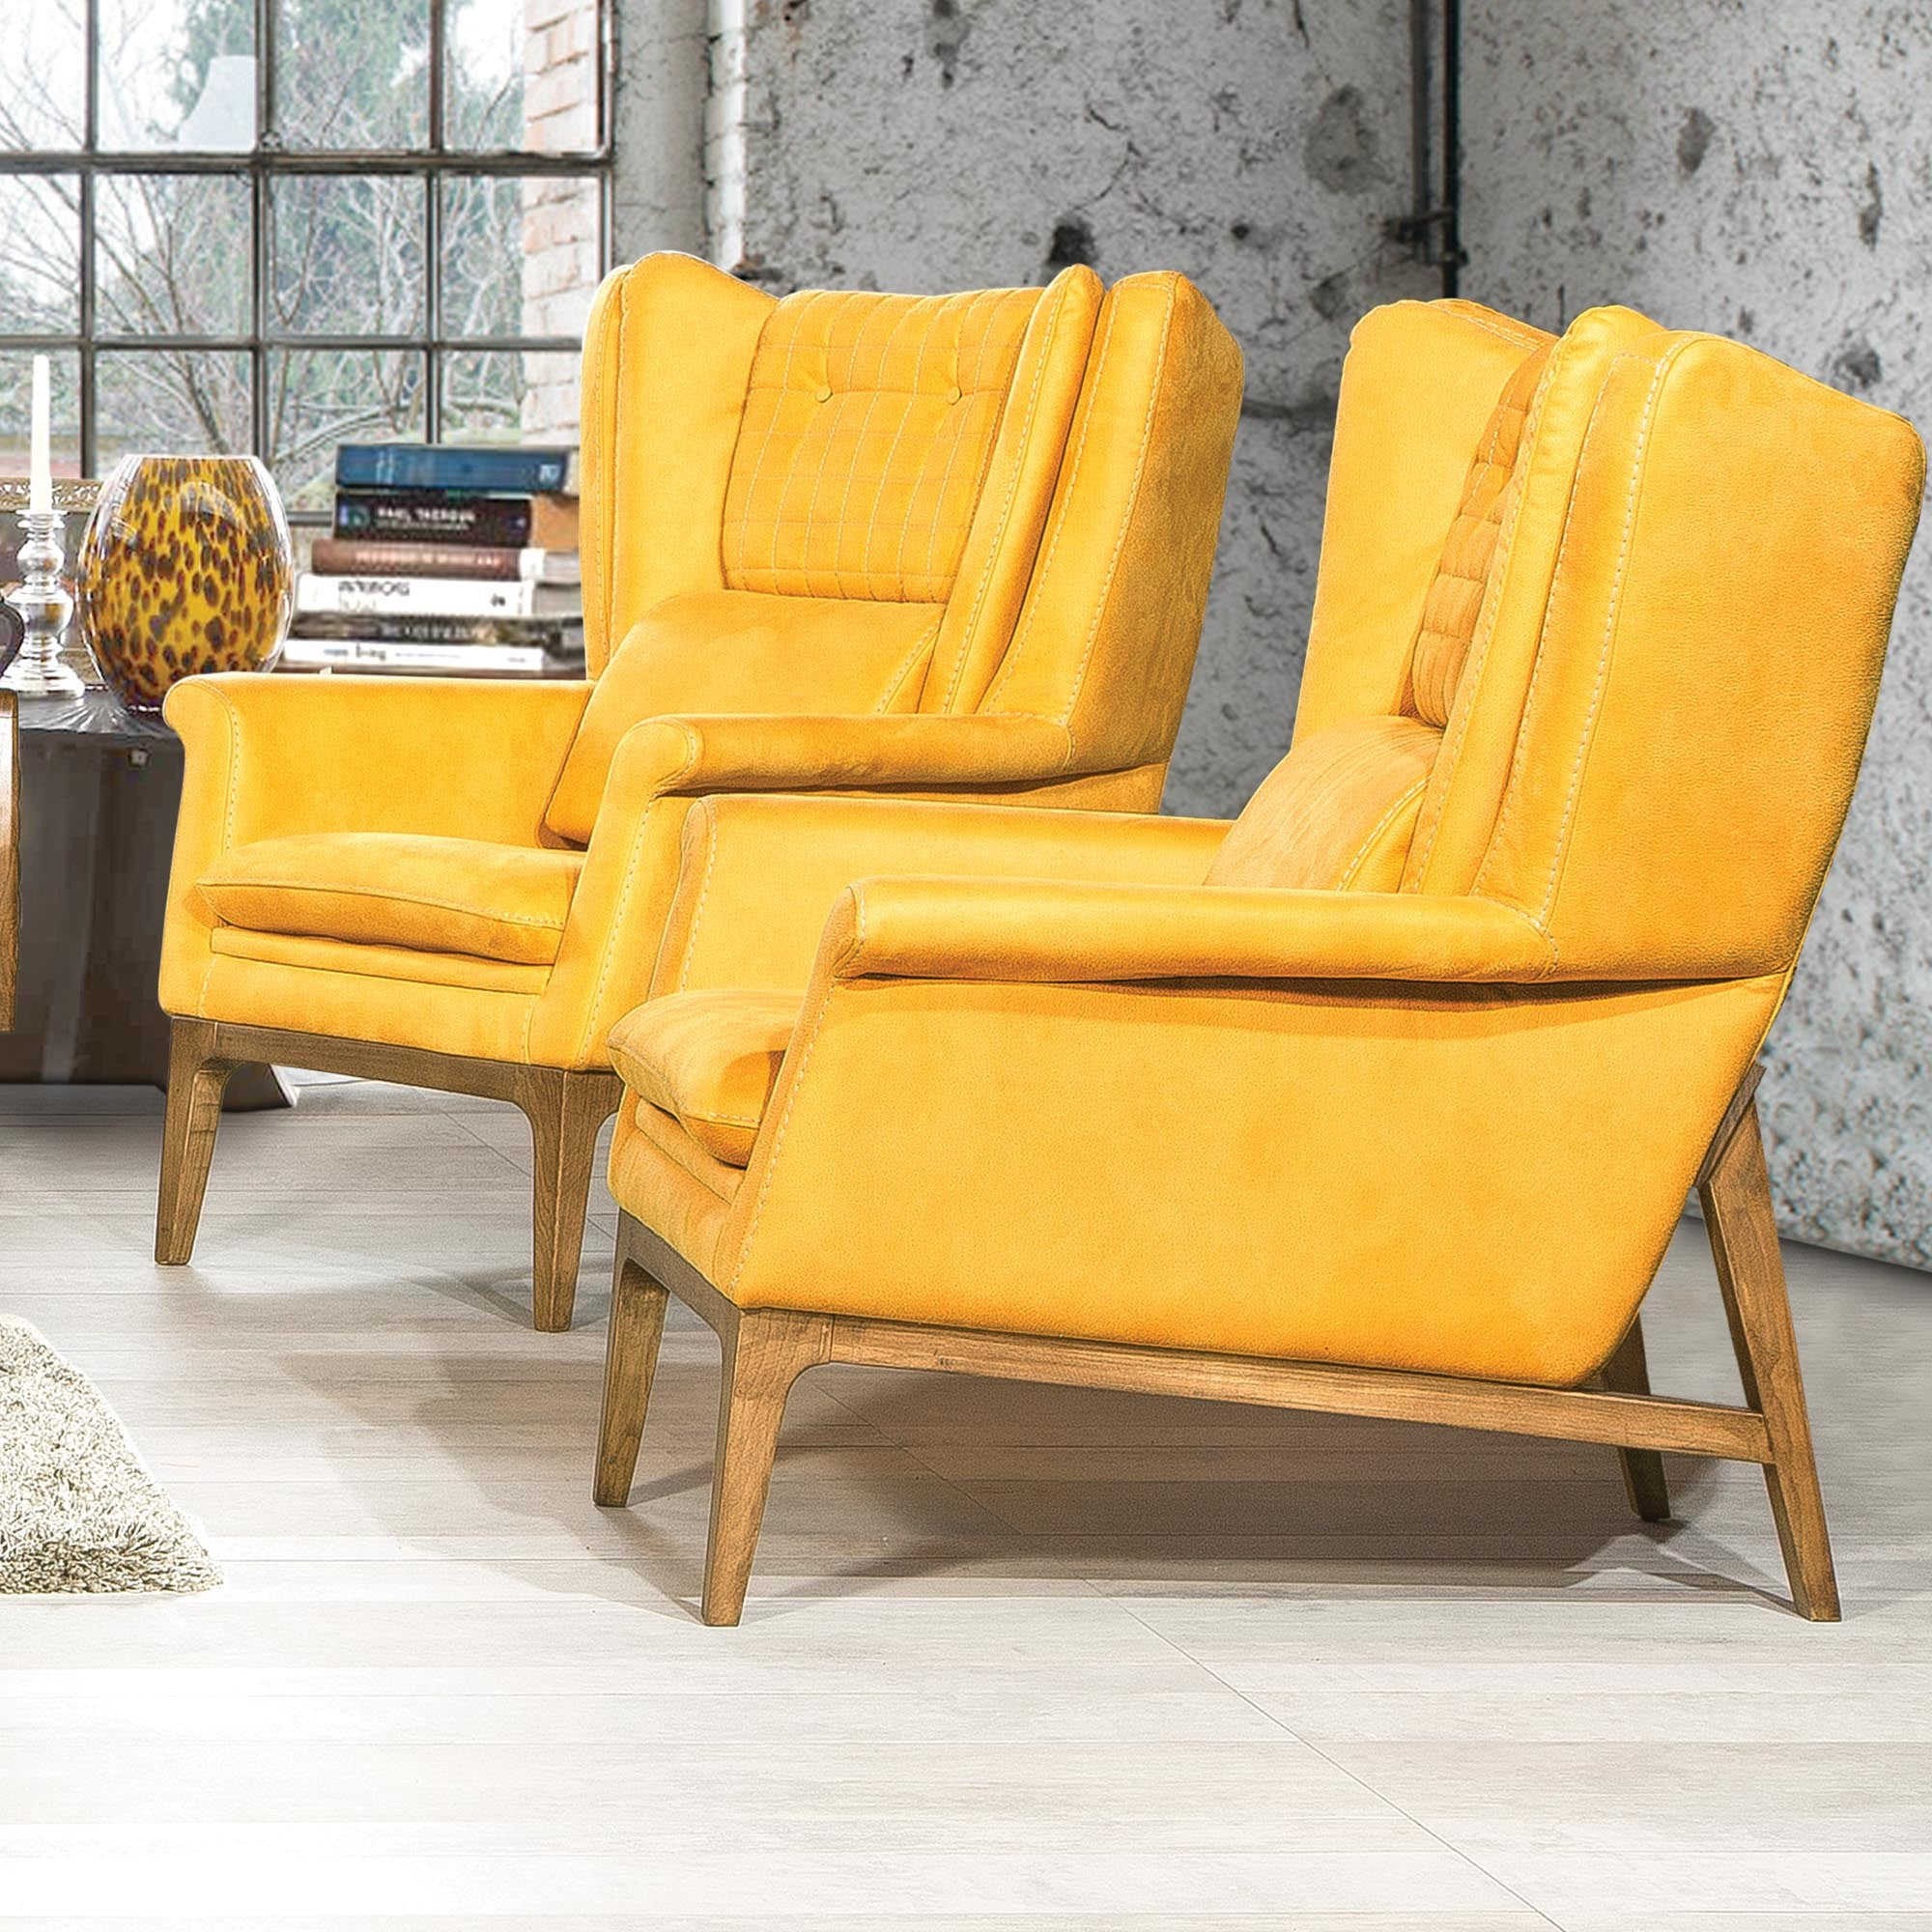 Pre-Order 60 Days Delivery  SIENA  Lounge Armchair   SIEN001S-lounge - ebarza